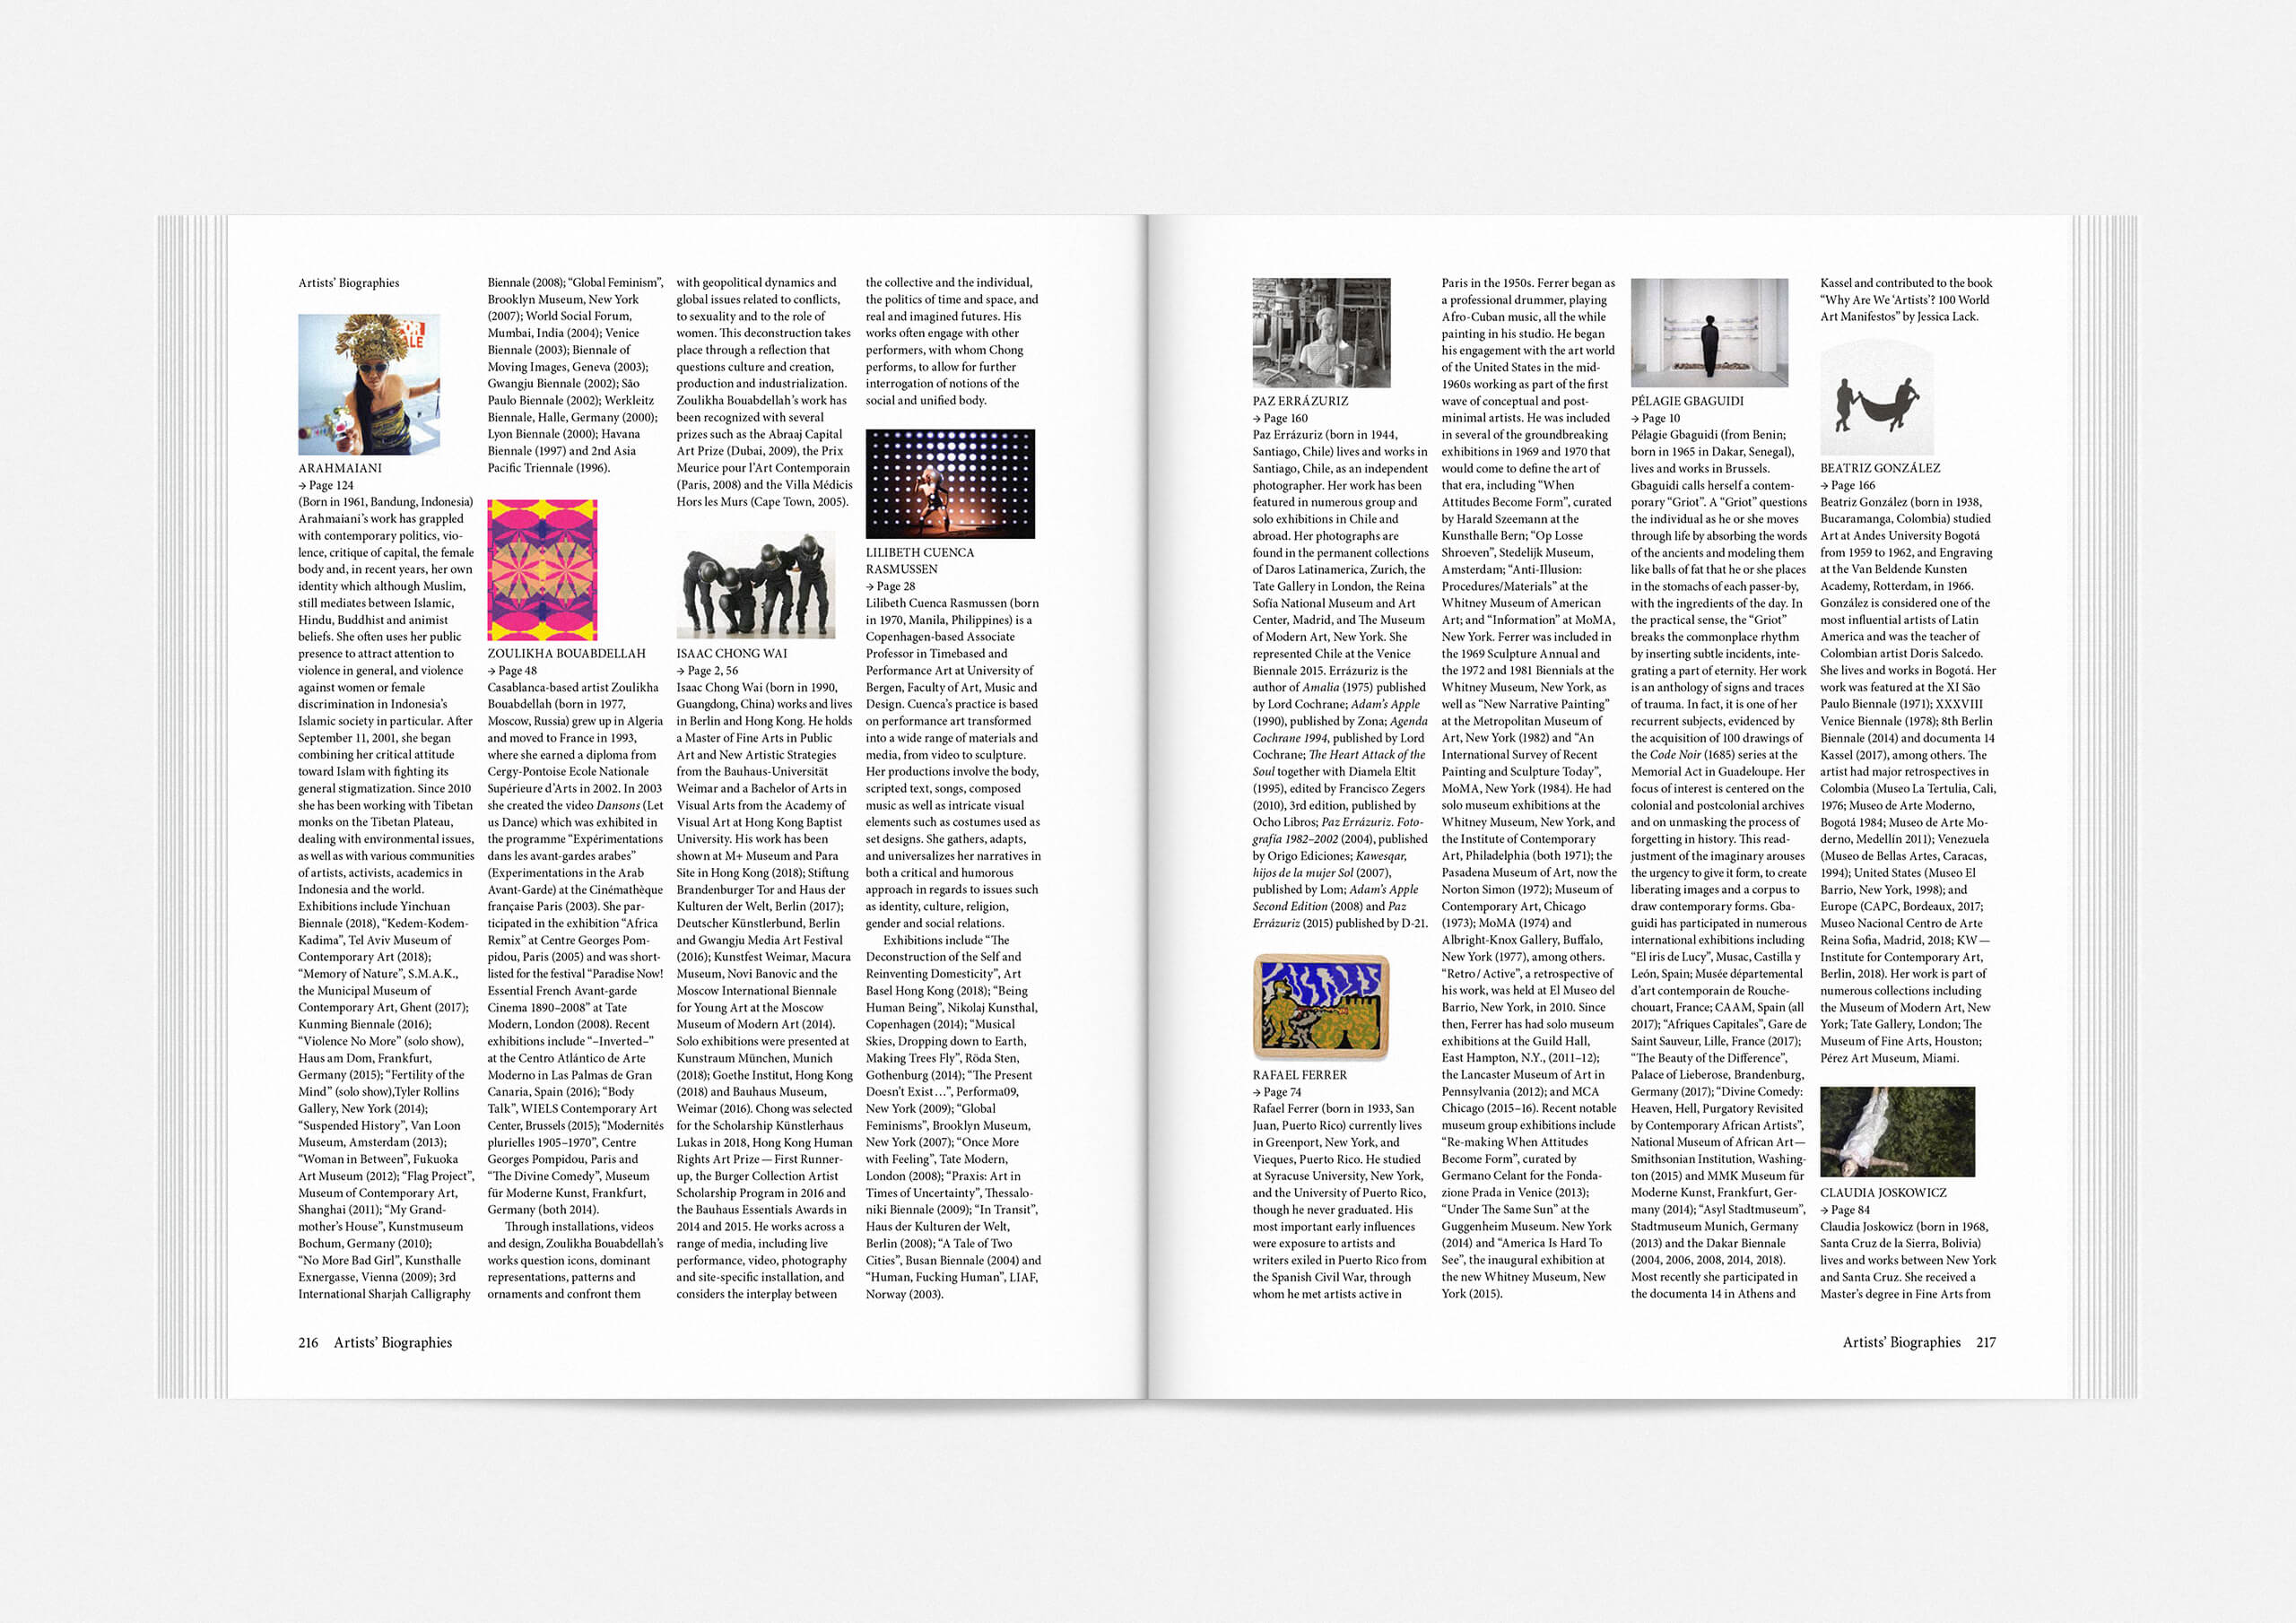 https://neuegestaltung.de/media/pages/clients/protocollum-issue-no-05/189fdfd64d-1597415145/protocollum-5-page-216217-ng.jpg